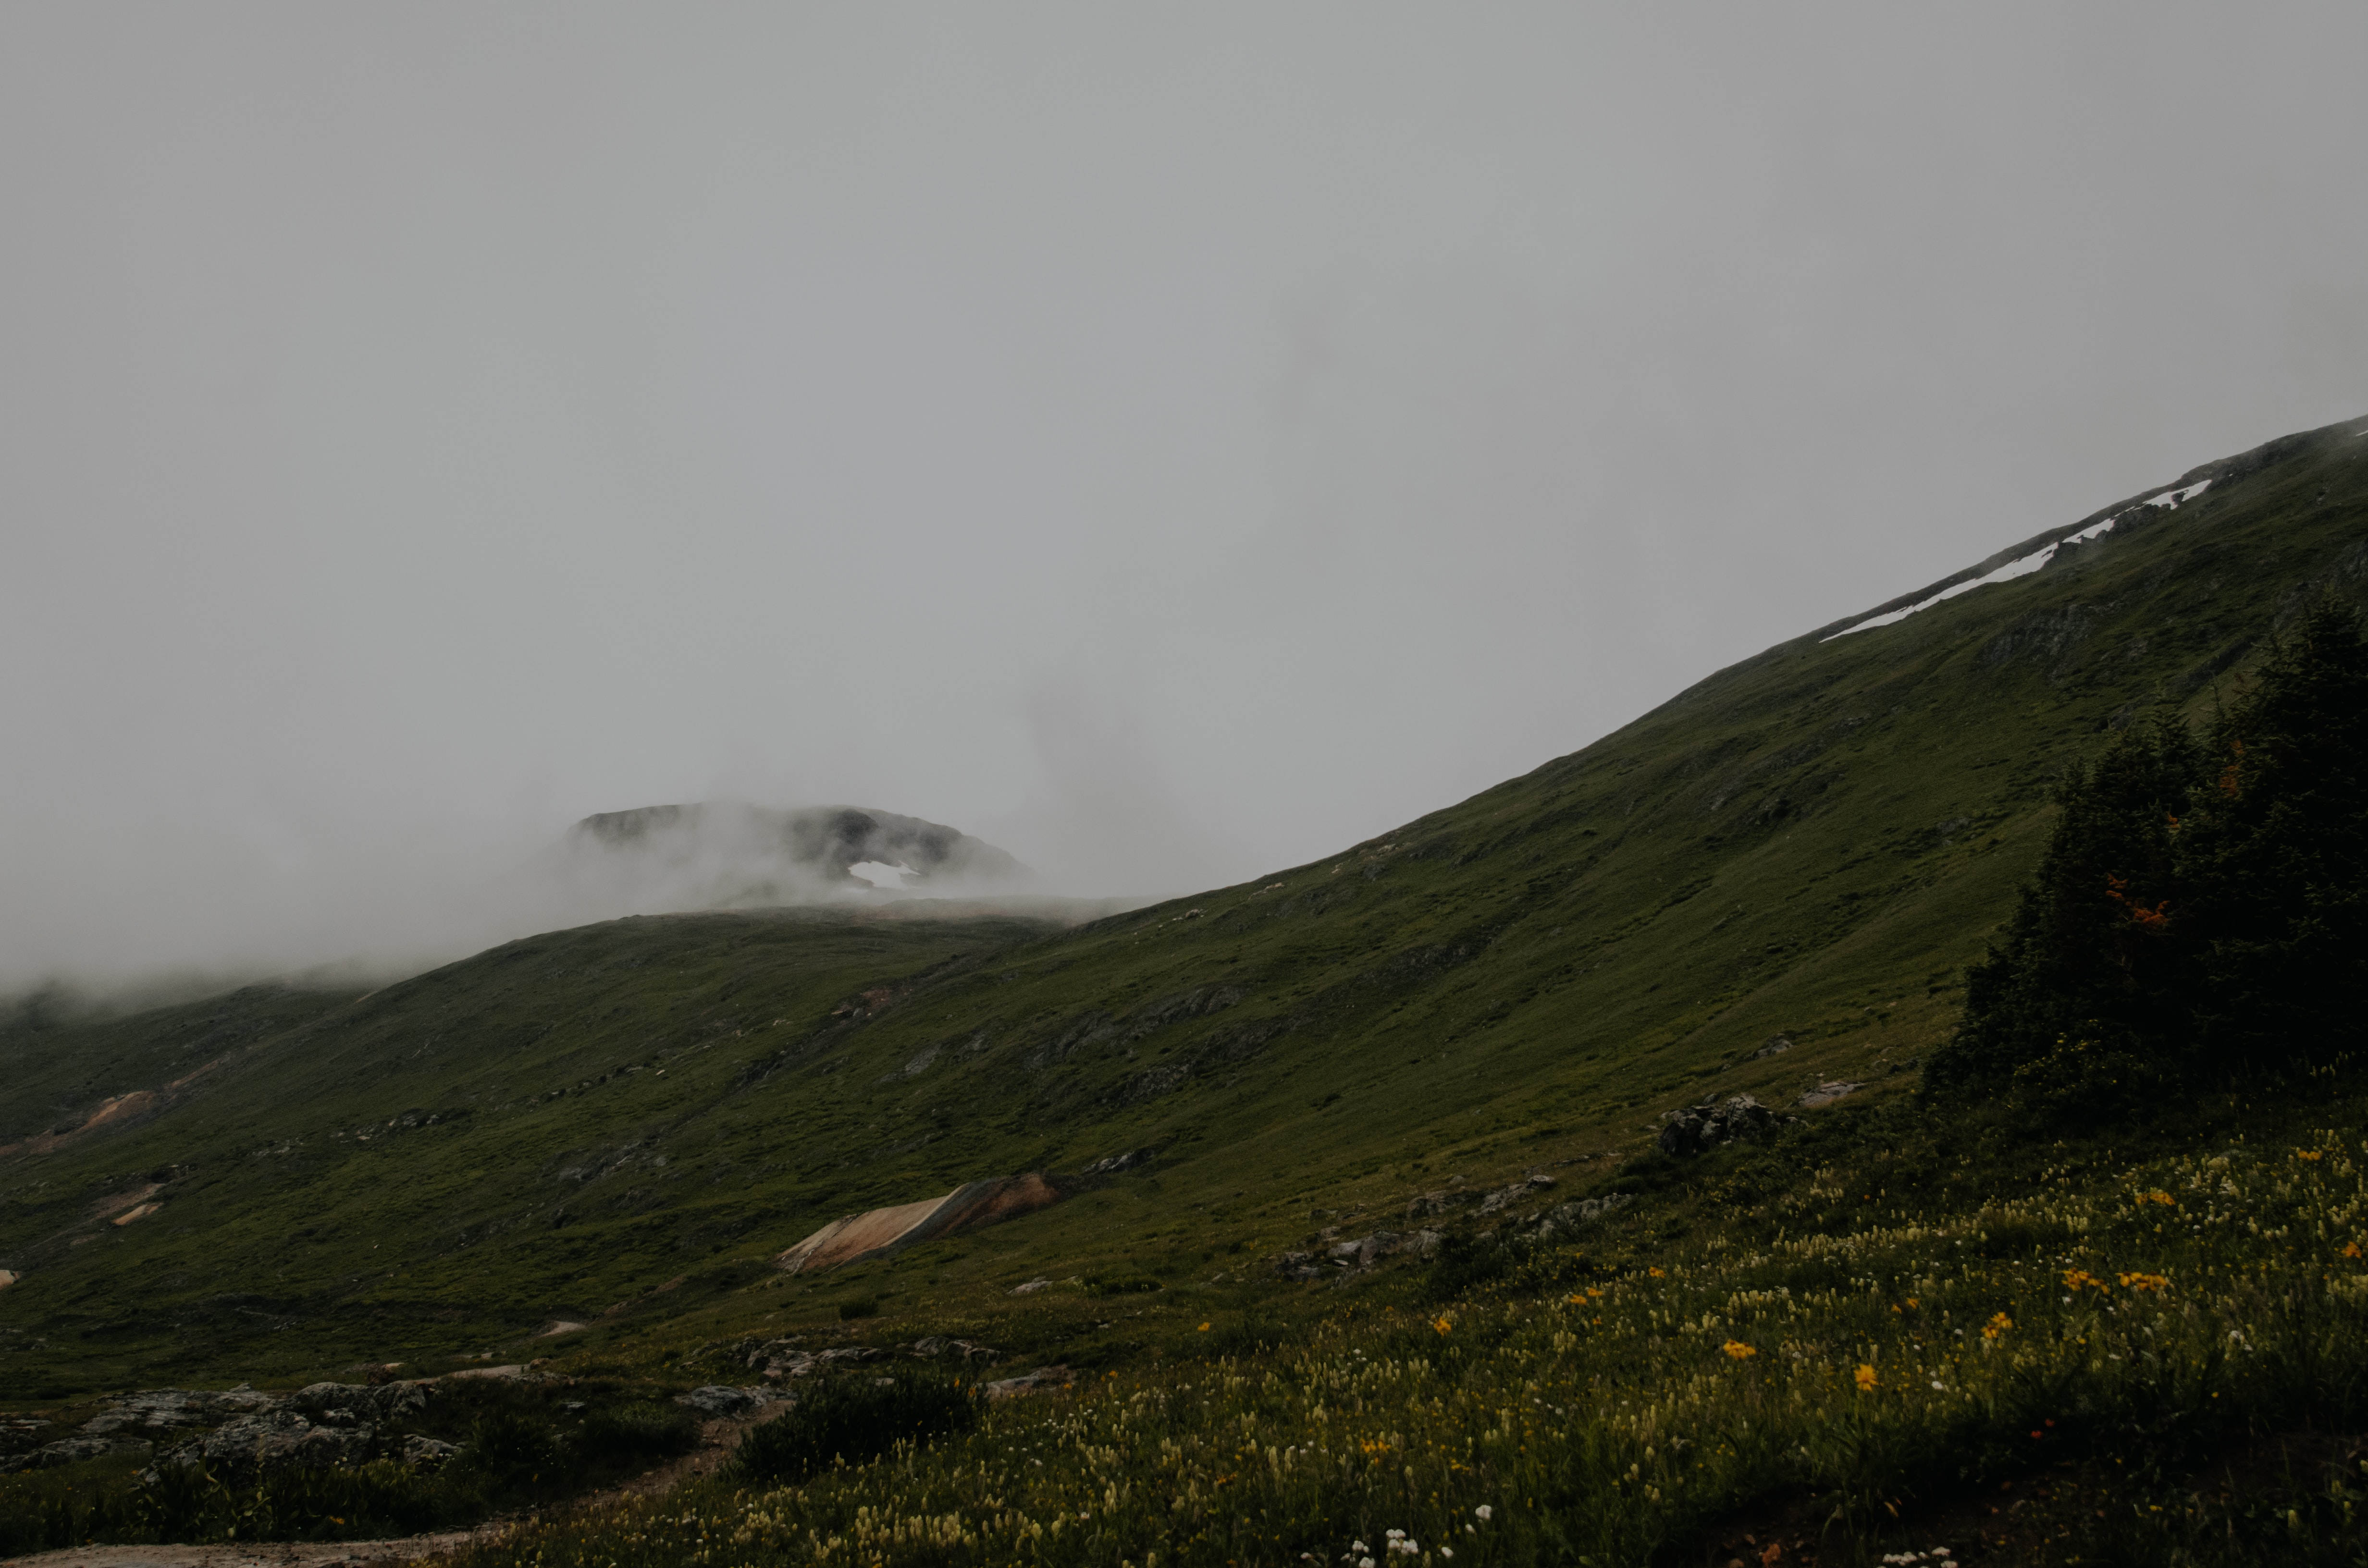 green mountains under gray sky during daytime